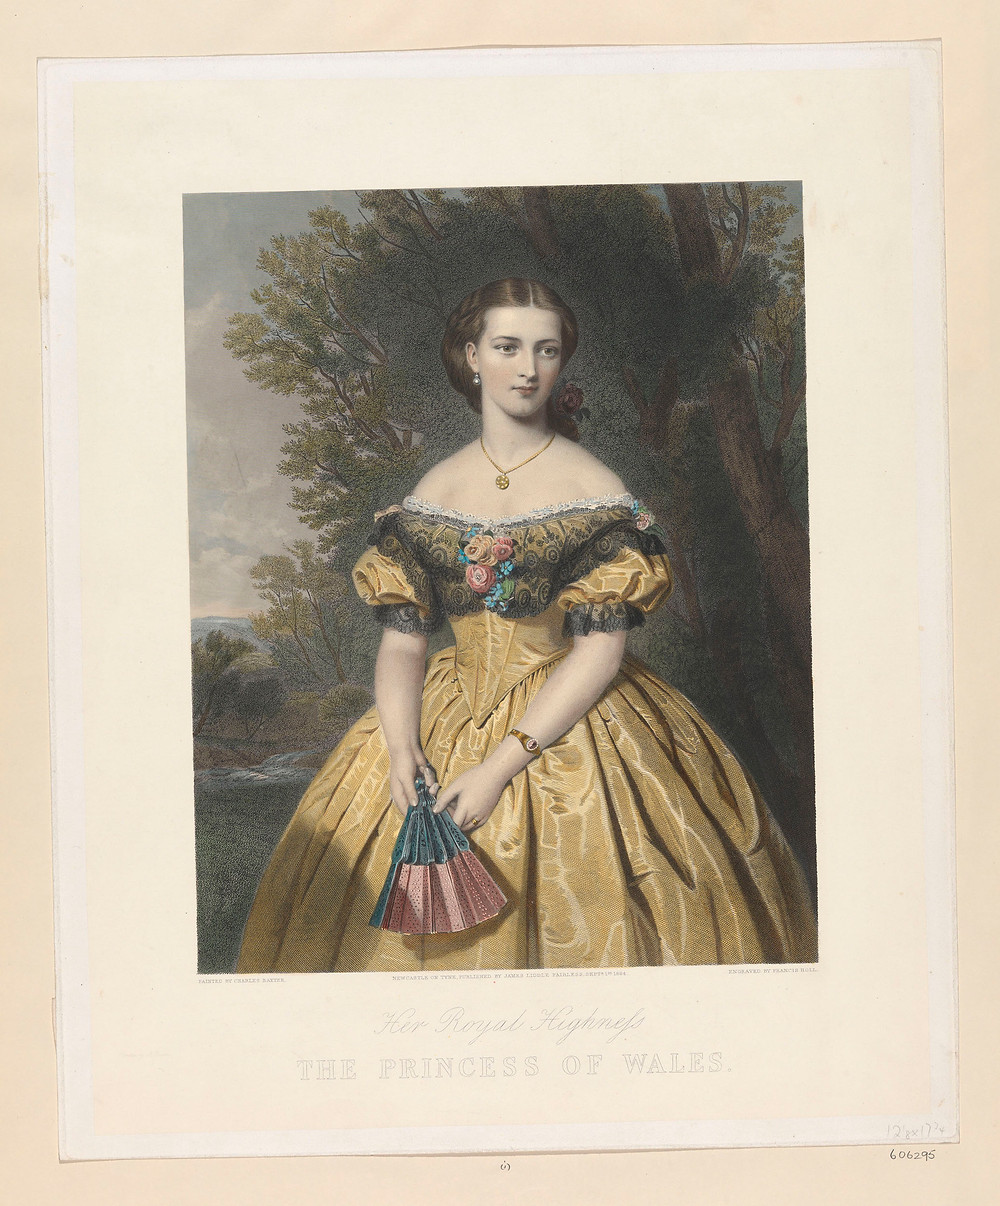 Her Royal Highness THE PRINCESS OF WALES. 1864, Royal Collection Trust/© Her Majesty Queen Elizabeth II 2018